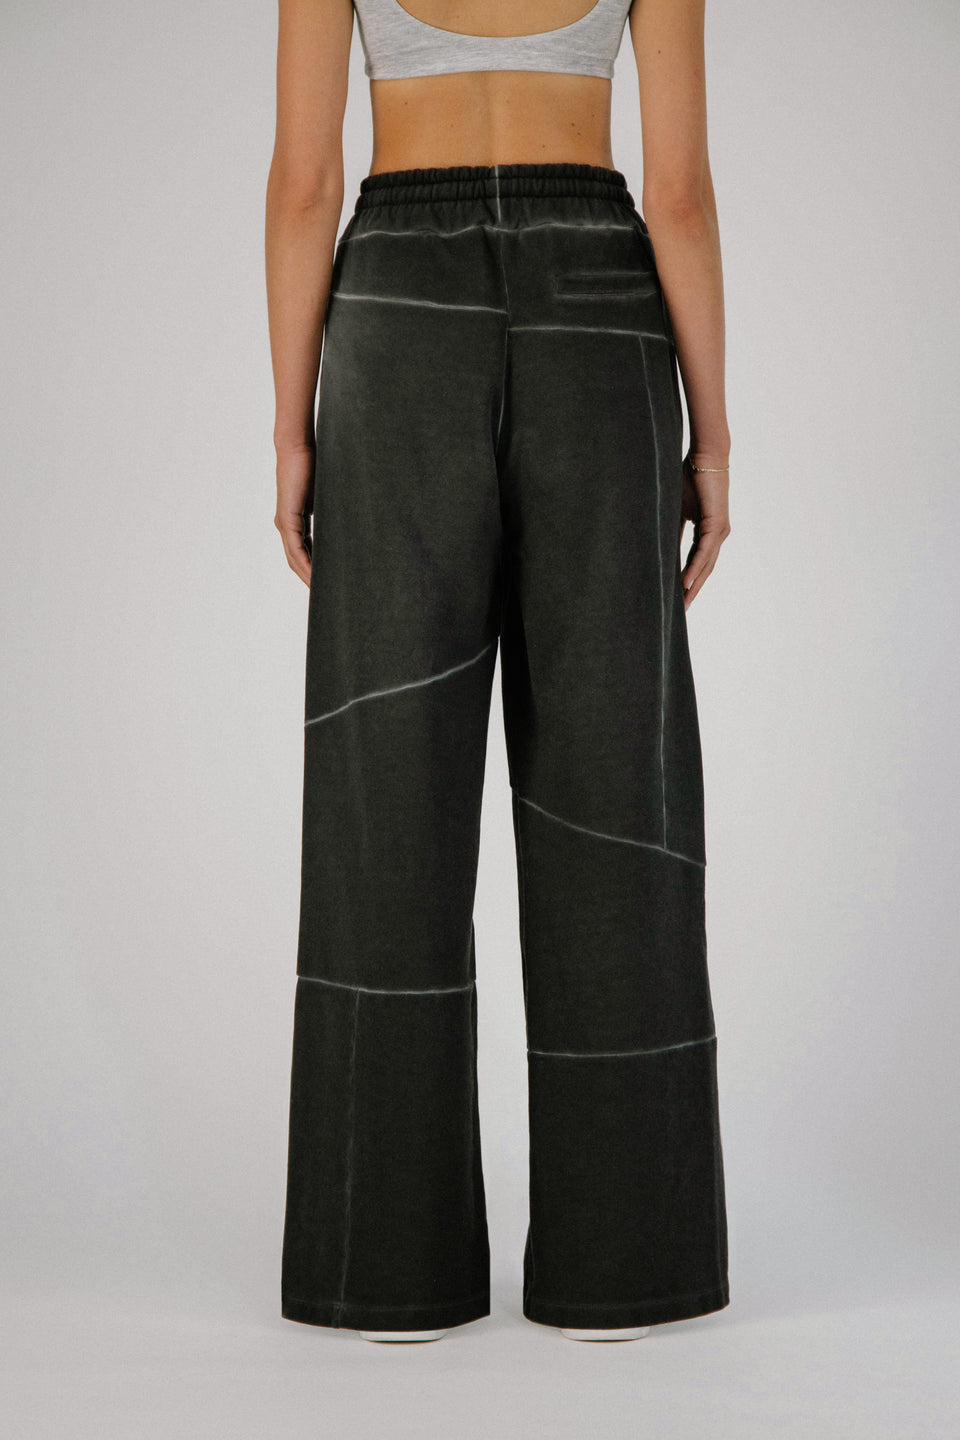 Deconstructed Lounge Pants Charcoal